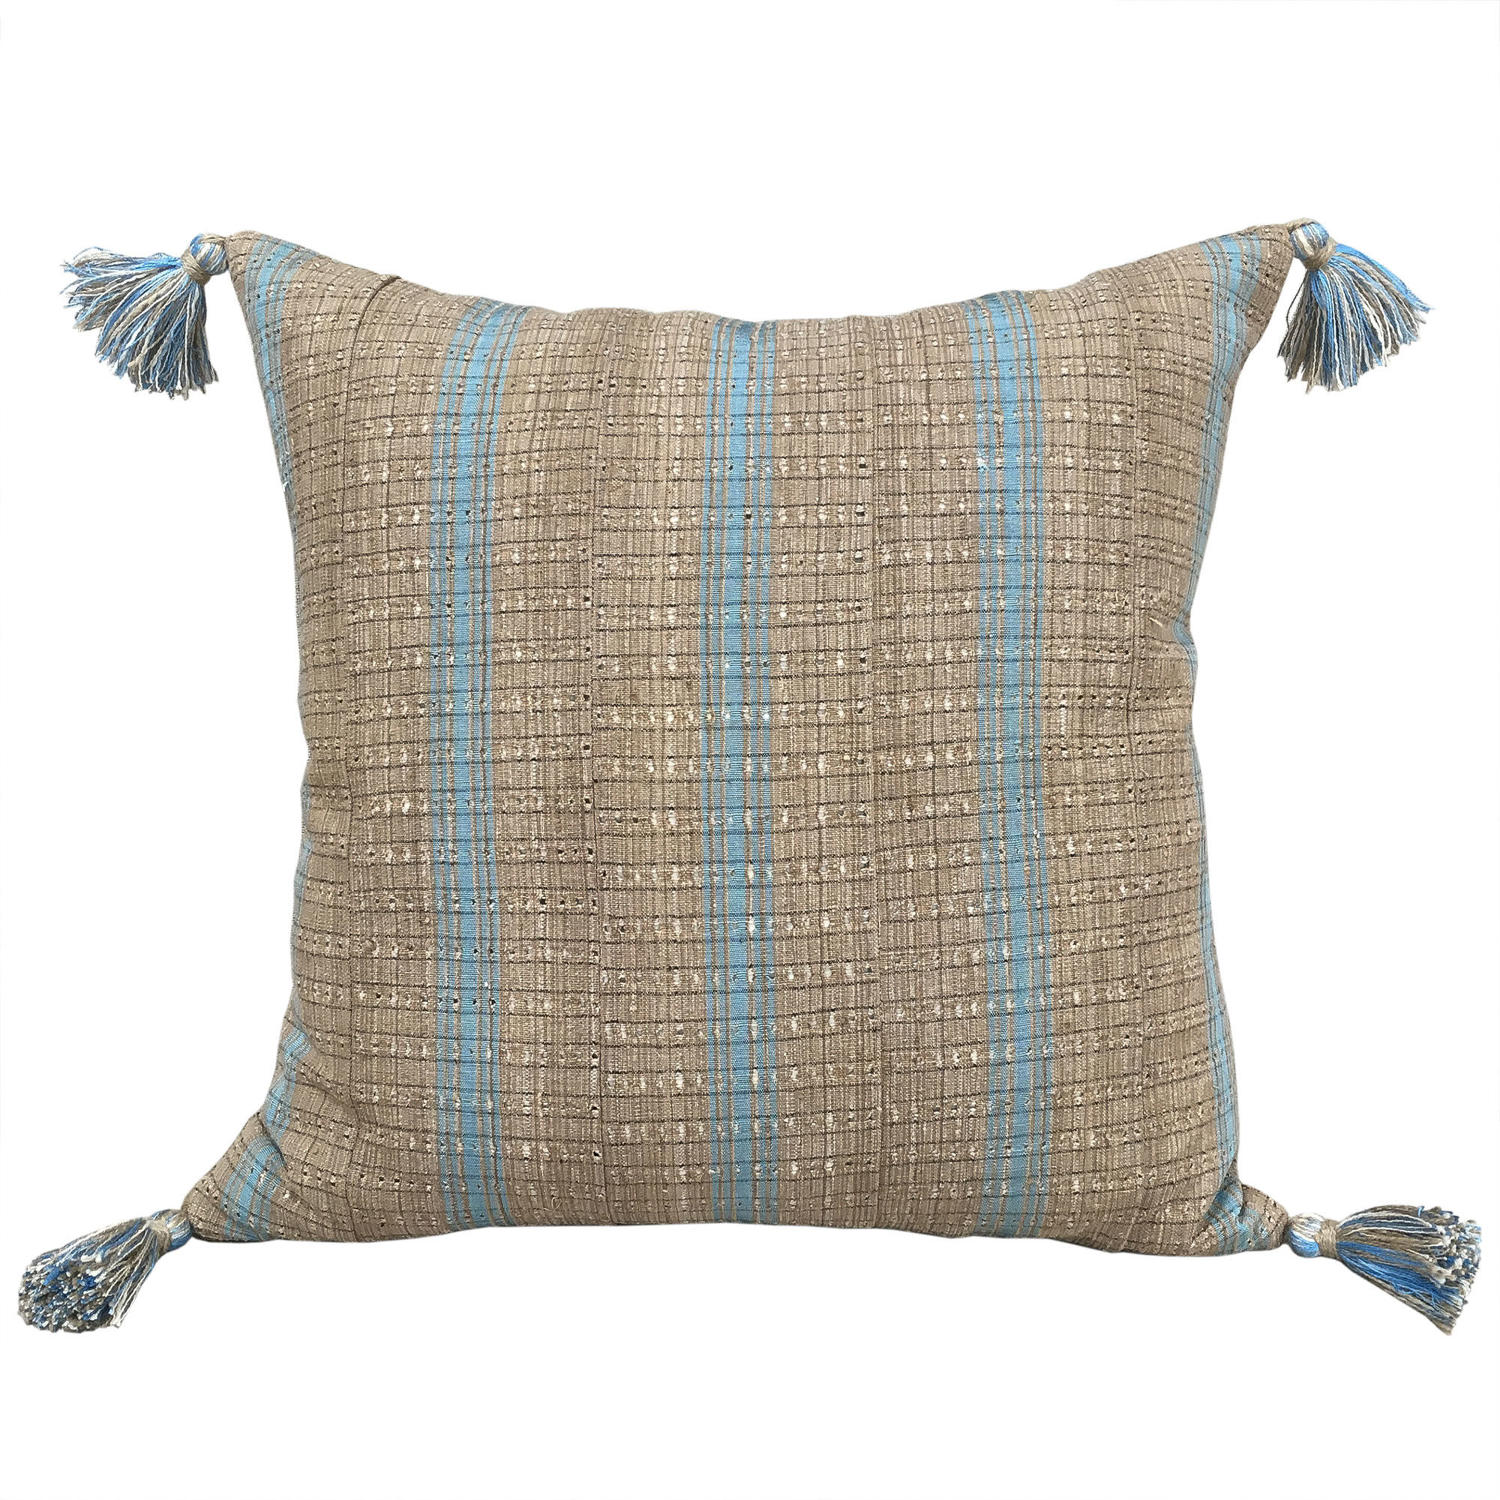 Yoruba Cushions with Blue Stripes & Tassels